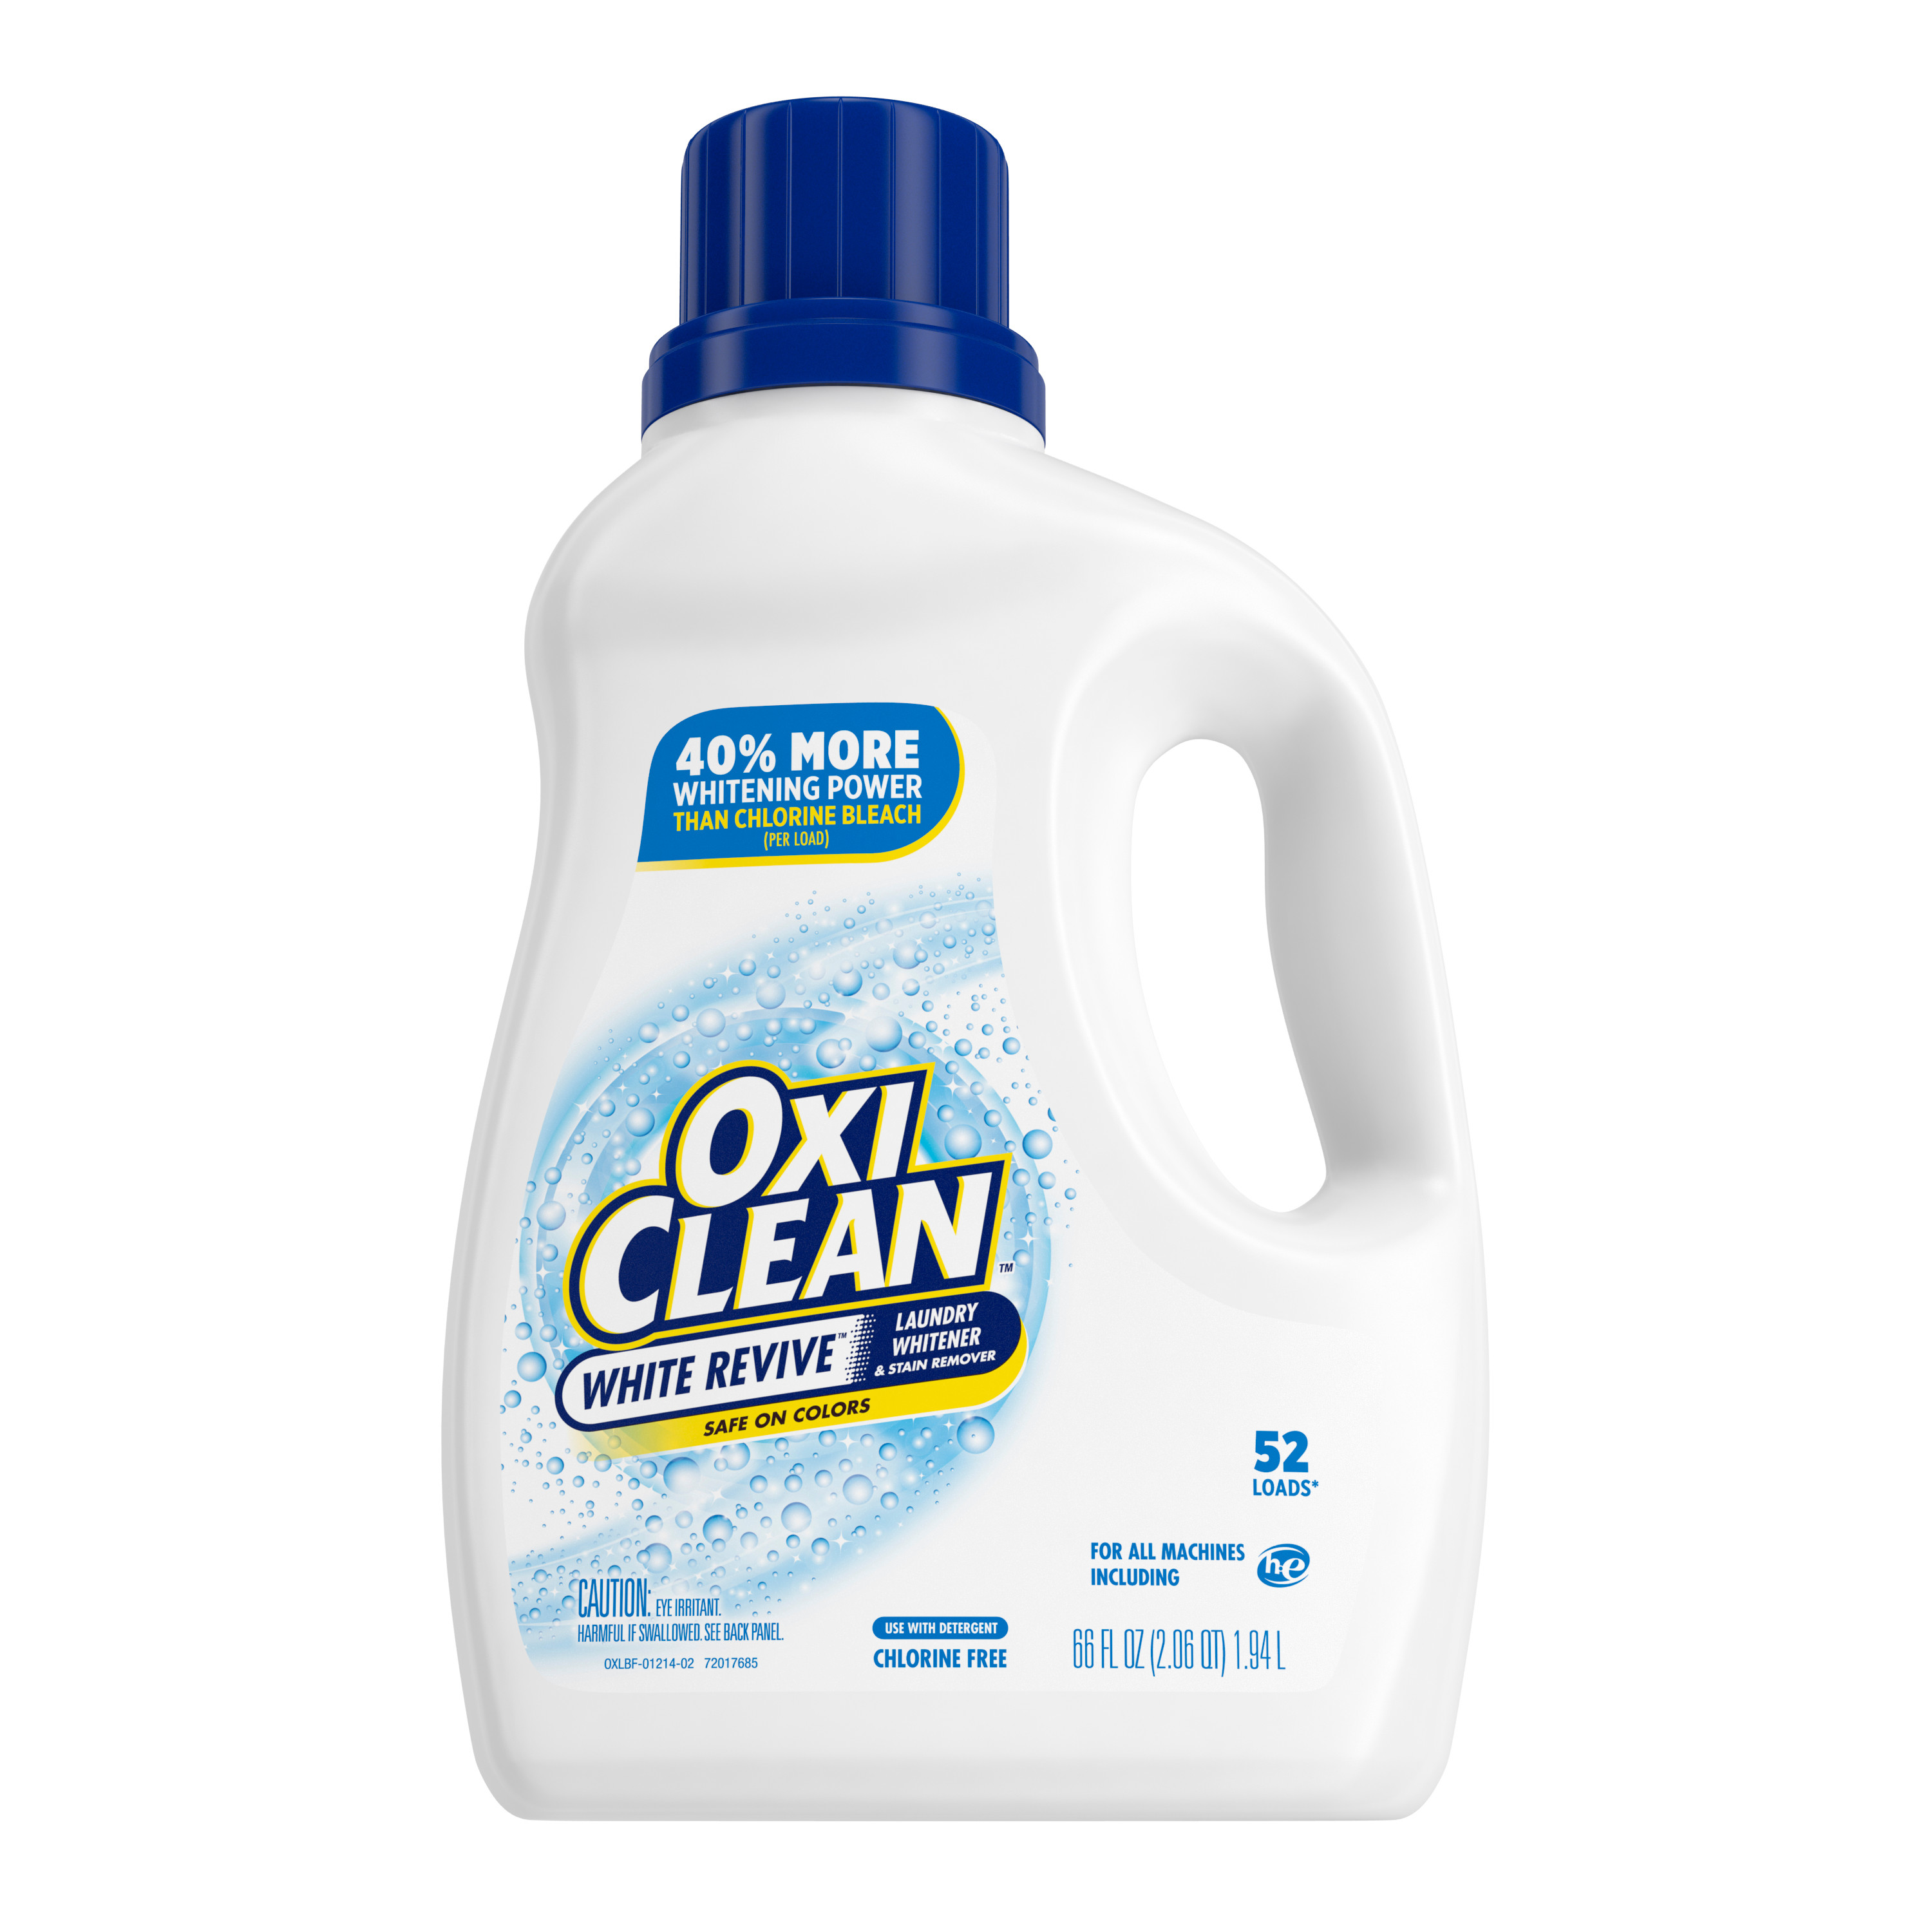 oxiclean white revive liquid laundry whitener stain remover 66oz